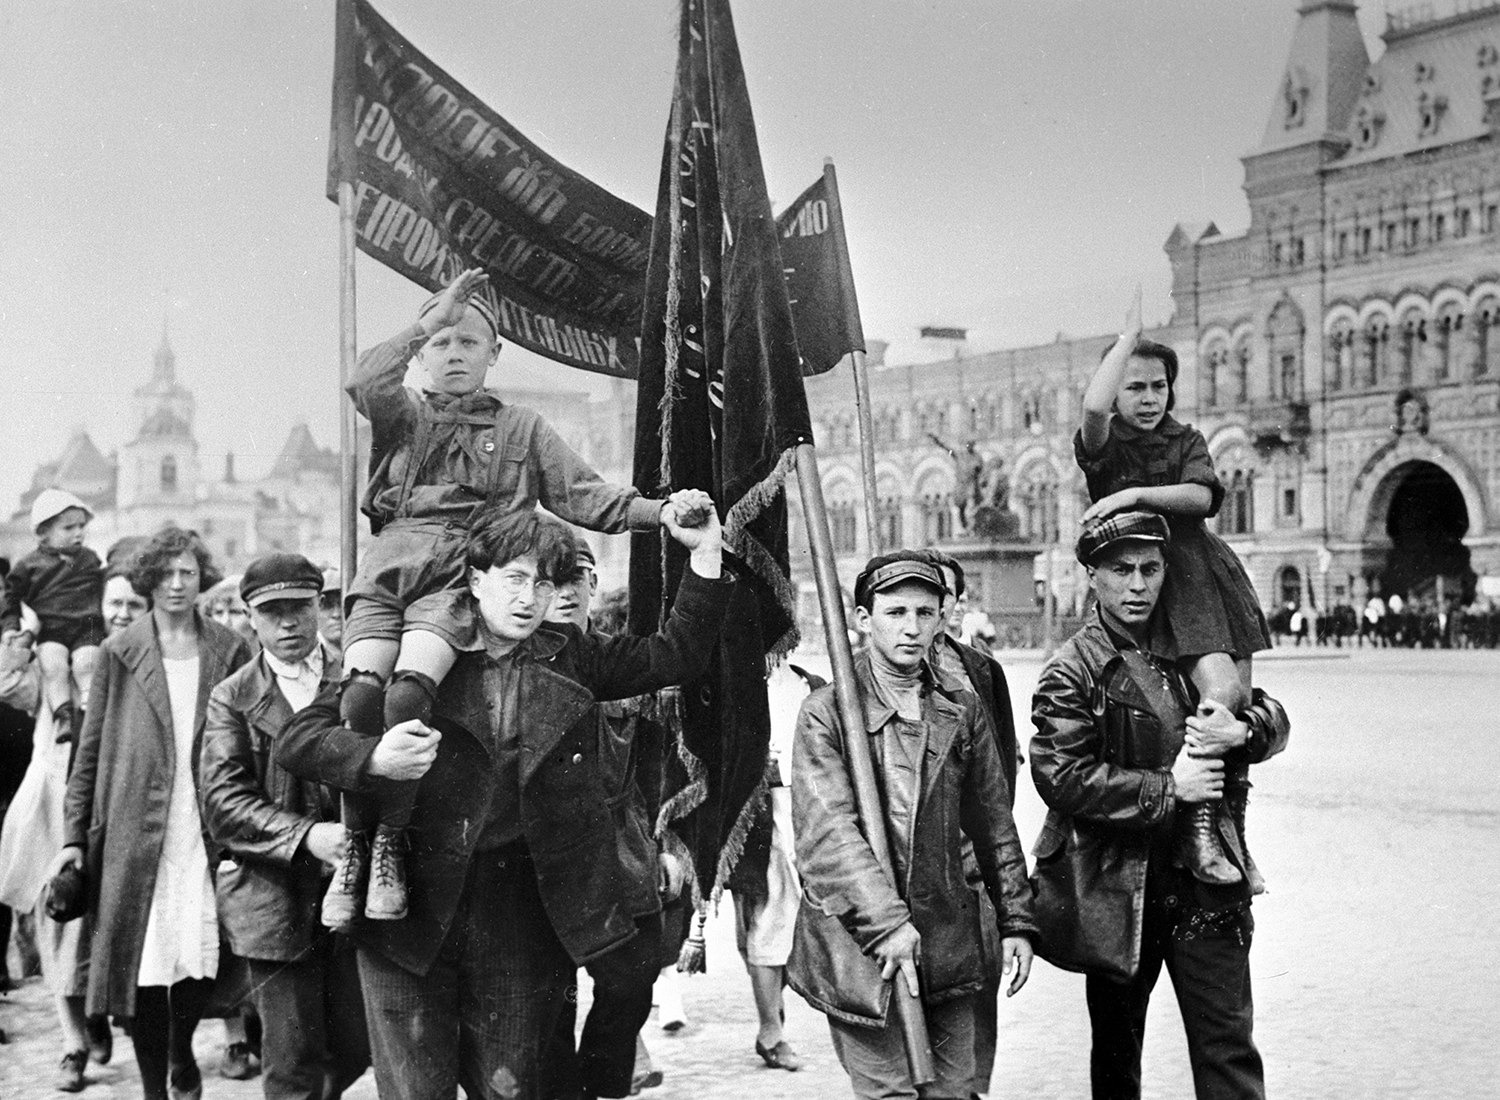 Demonstrators on International Youth Day, 1920. (Sputnik/Bridgeman Images)